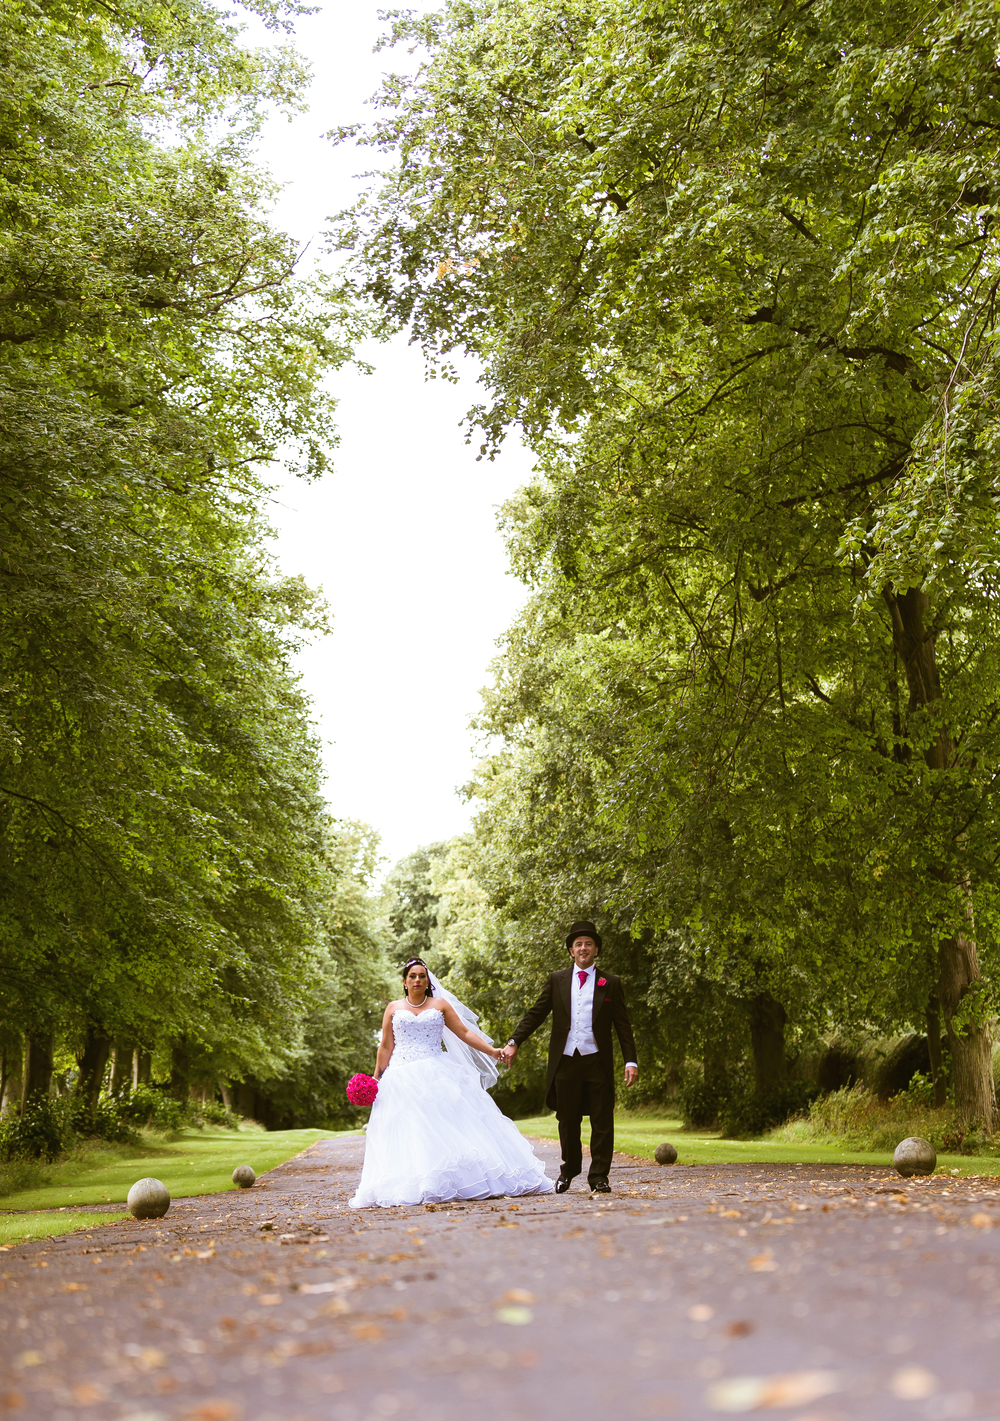 A wedding photo of the bride and groom walking towards their reception at Knowlton court to great all their guests